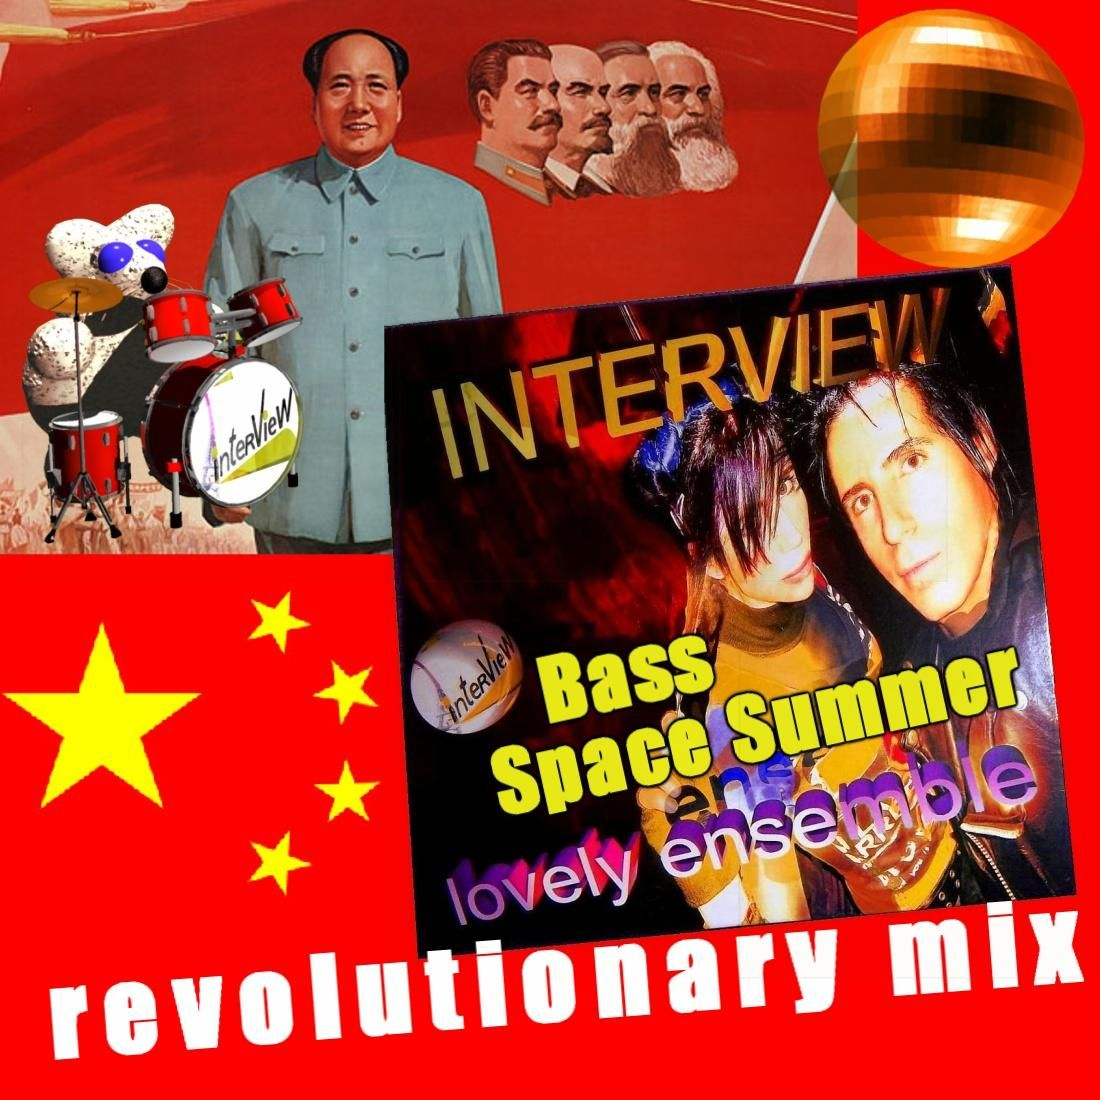 Have you heard 'Bass Space Summer #NuDisco #Revolutionary #mix' by INTERVIEW on #SoundCloud? #Pop ♫ #Funk https://soundcloud.com/interview/bass-space-summer-nudisco-revolutionary-mix-1